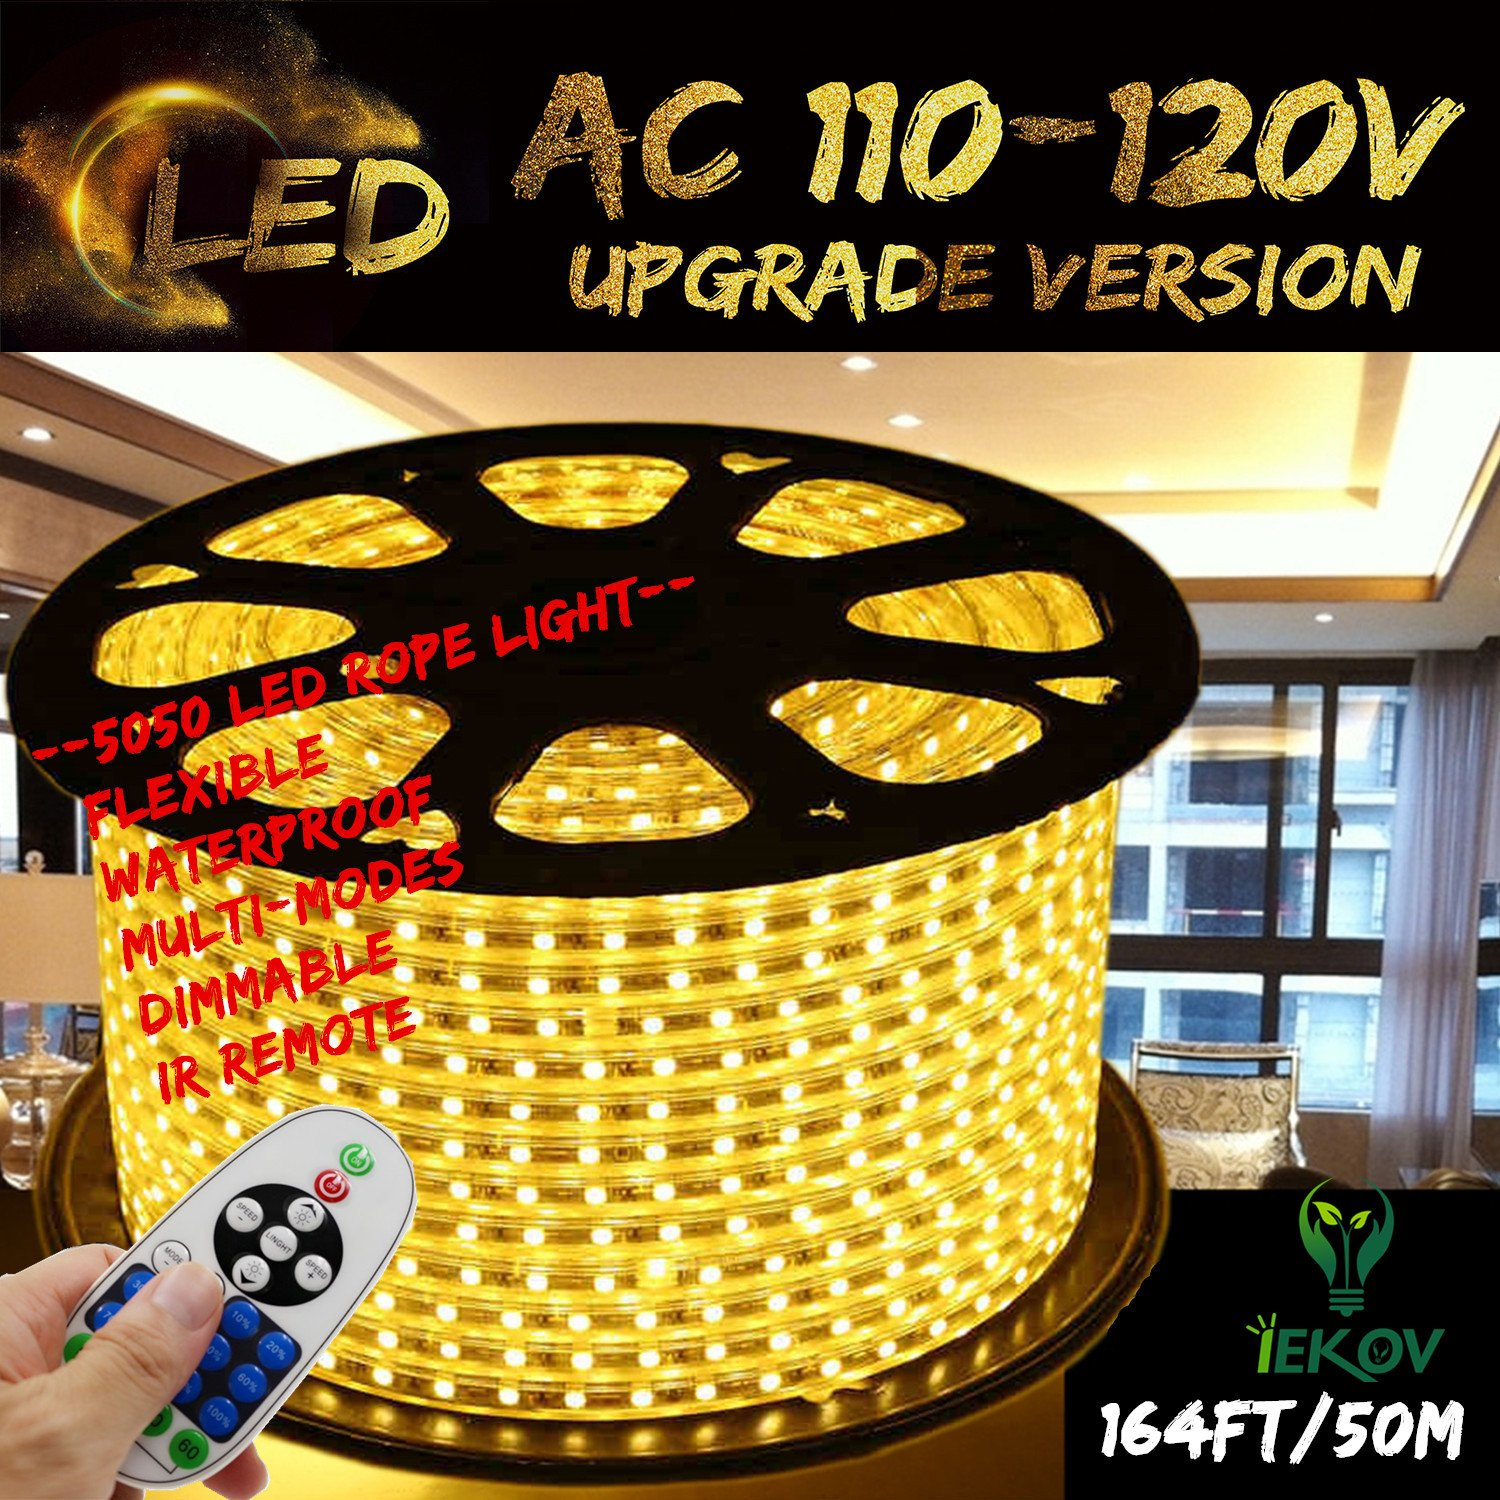 Warm White Color LED Strip Light, IEKOV™ AC 110-120V Flexible/Waterproof/Multi-Modes function/Dimmable SMD5050 LED Rope Light with Remote for Home/Office/Building Decoration (164ft/50m) by IEKOV